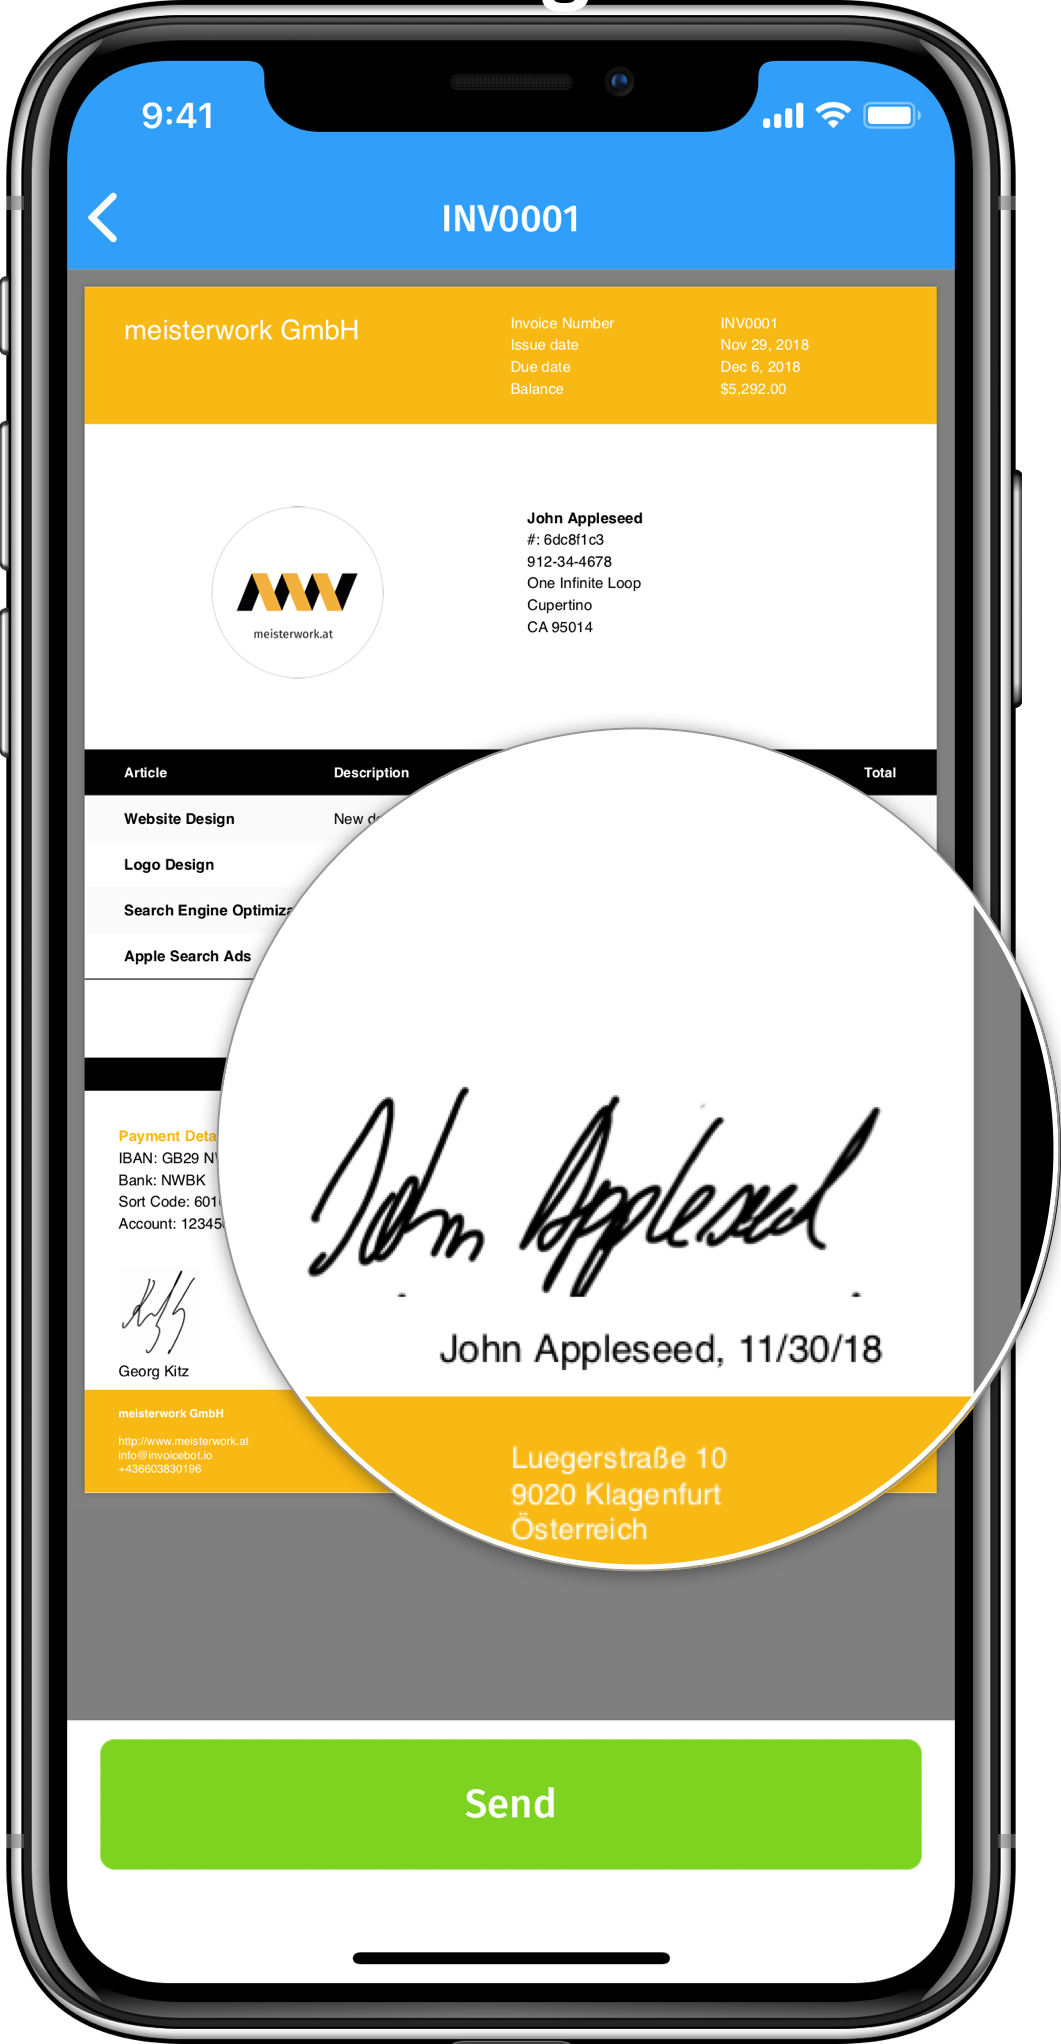 iPhone frame highlighting a customer signature on an invoice